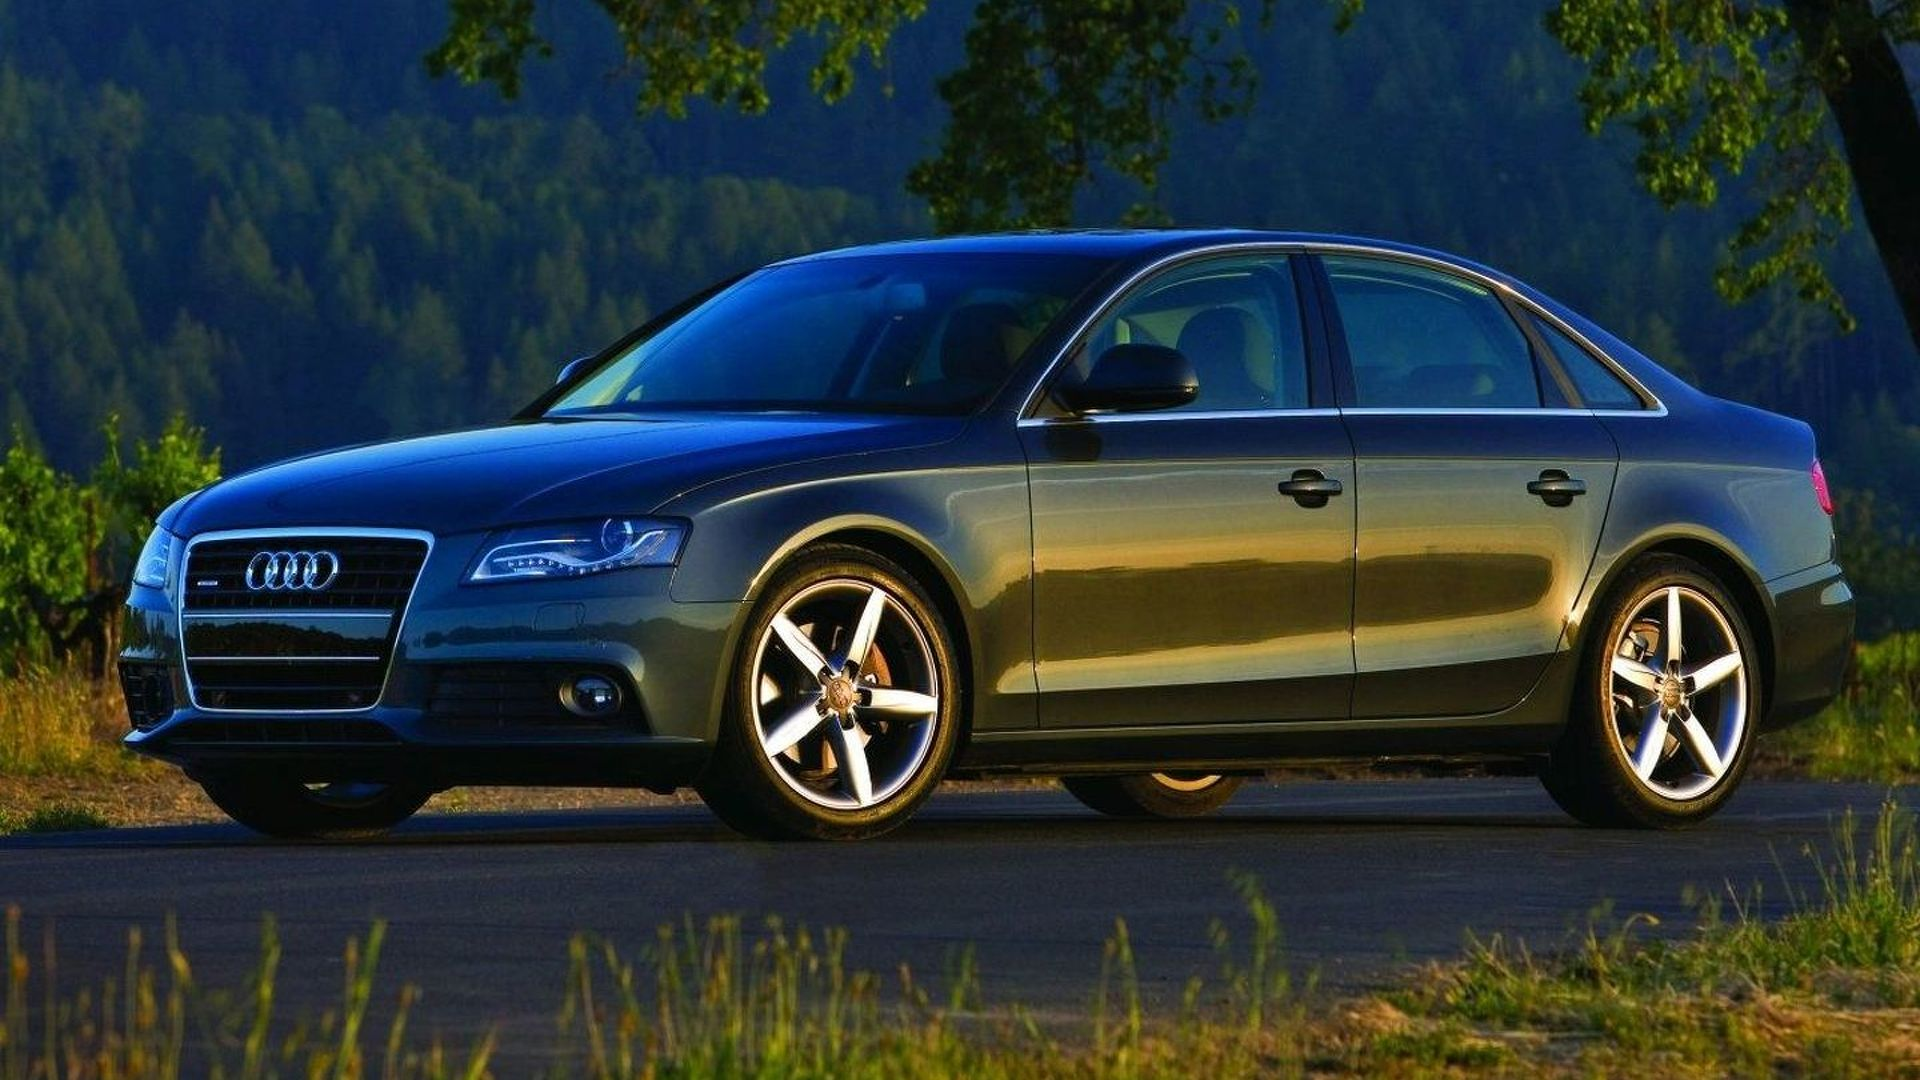 Audi Expands A4 Lineup With New FrontTrak and Manual Models